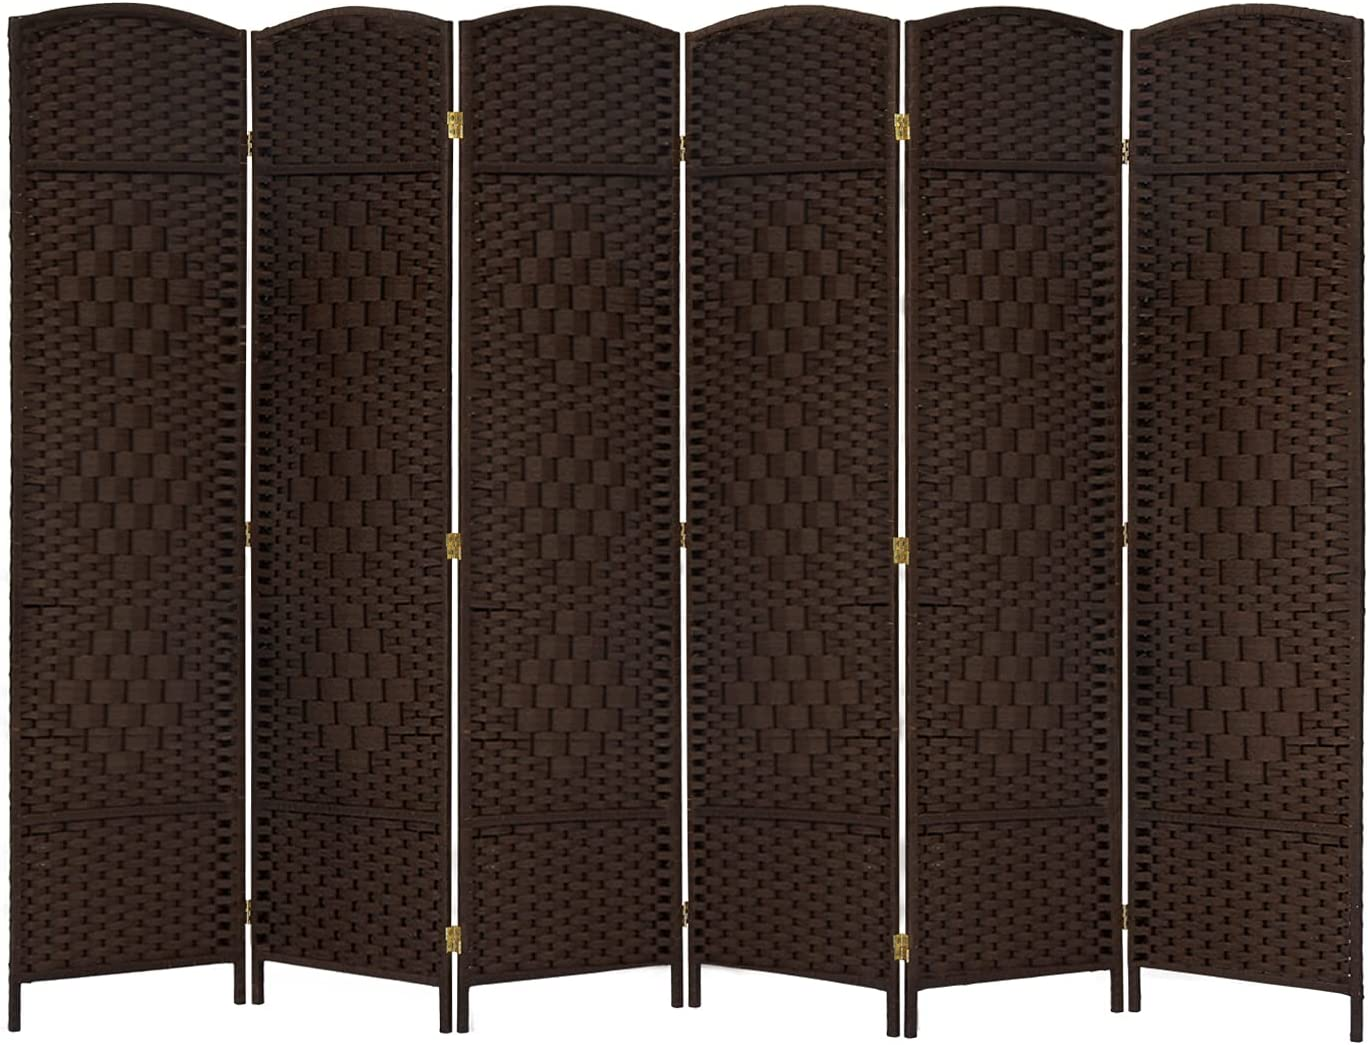 Wooden Room Divider Large special price !! Wall partition Attention brand Folding Screen 360 - ° Rotati